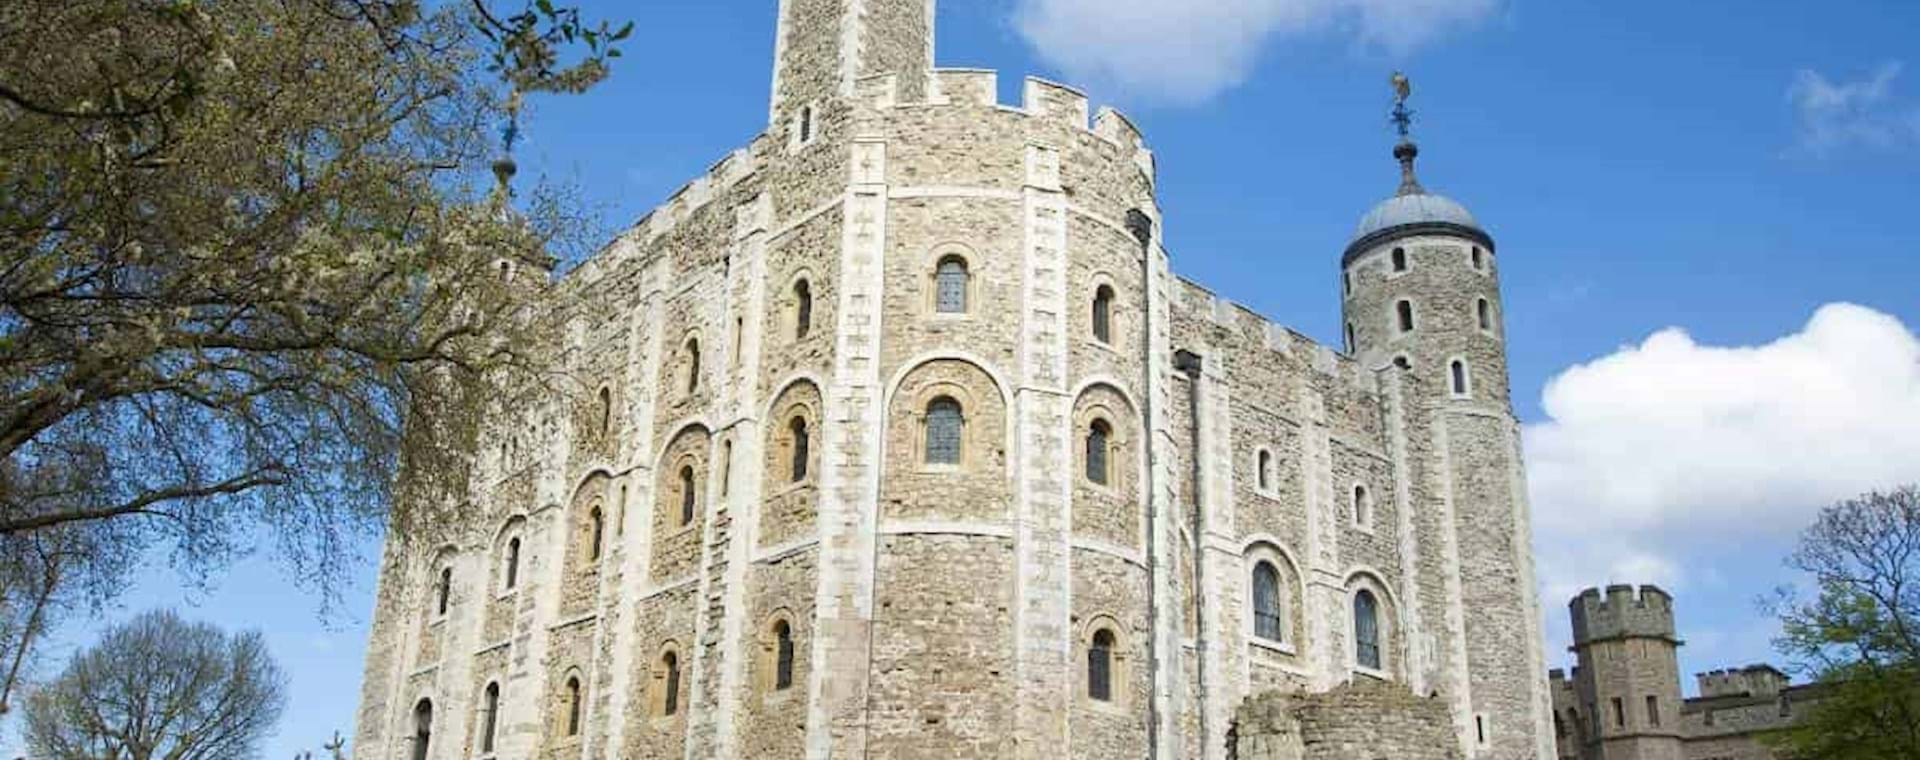 Front view of the Tower of London